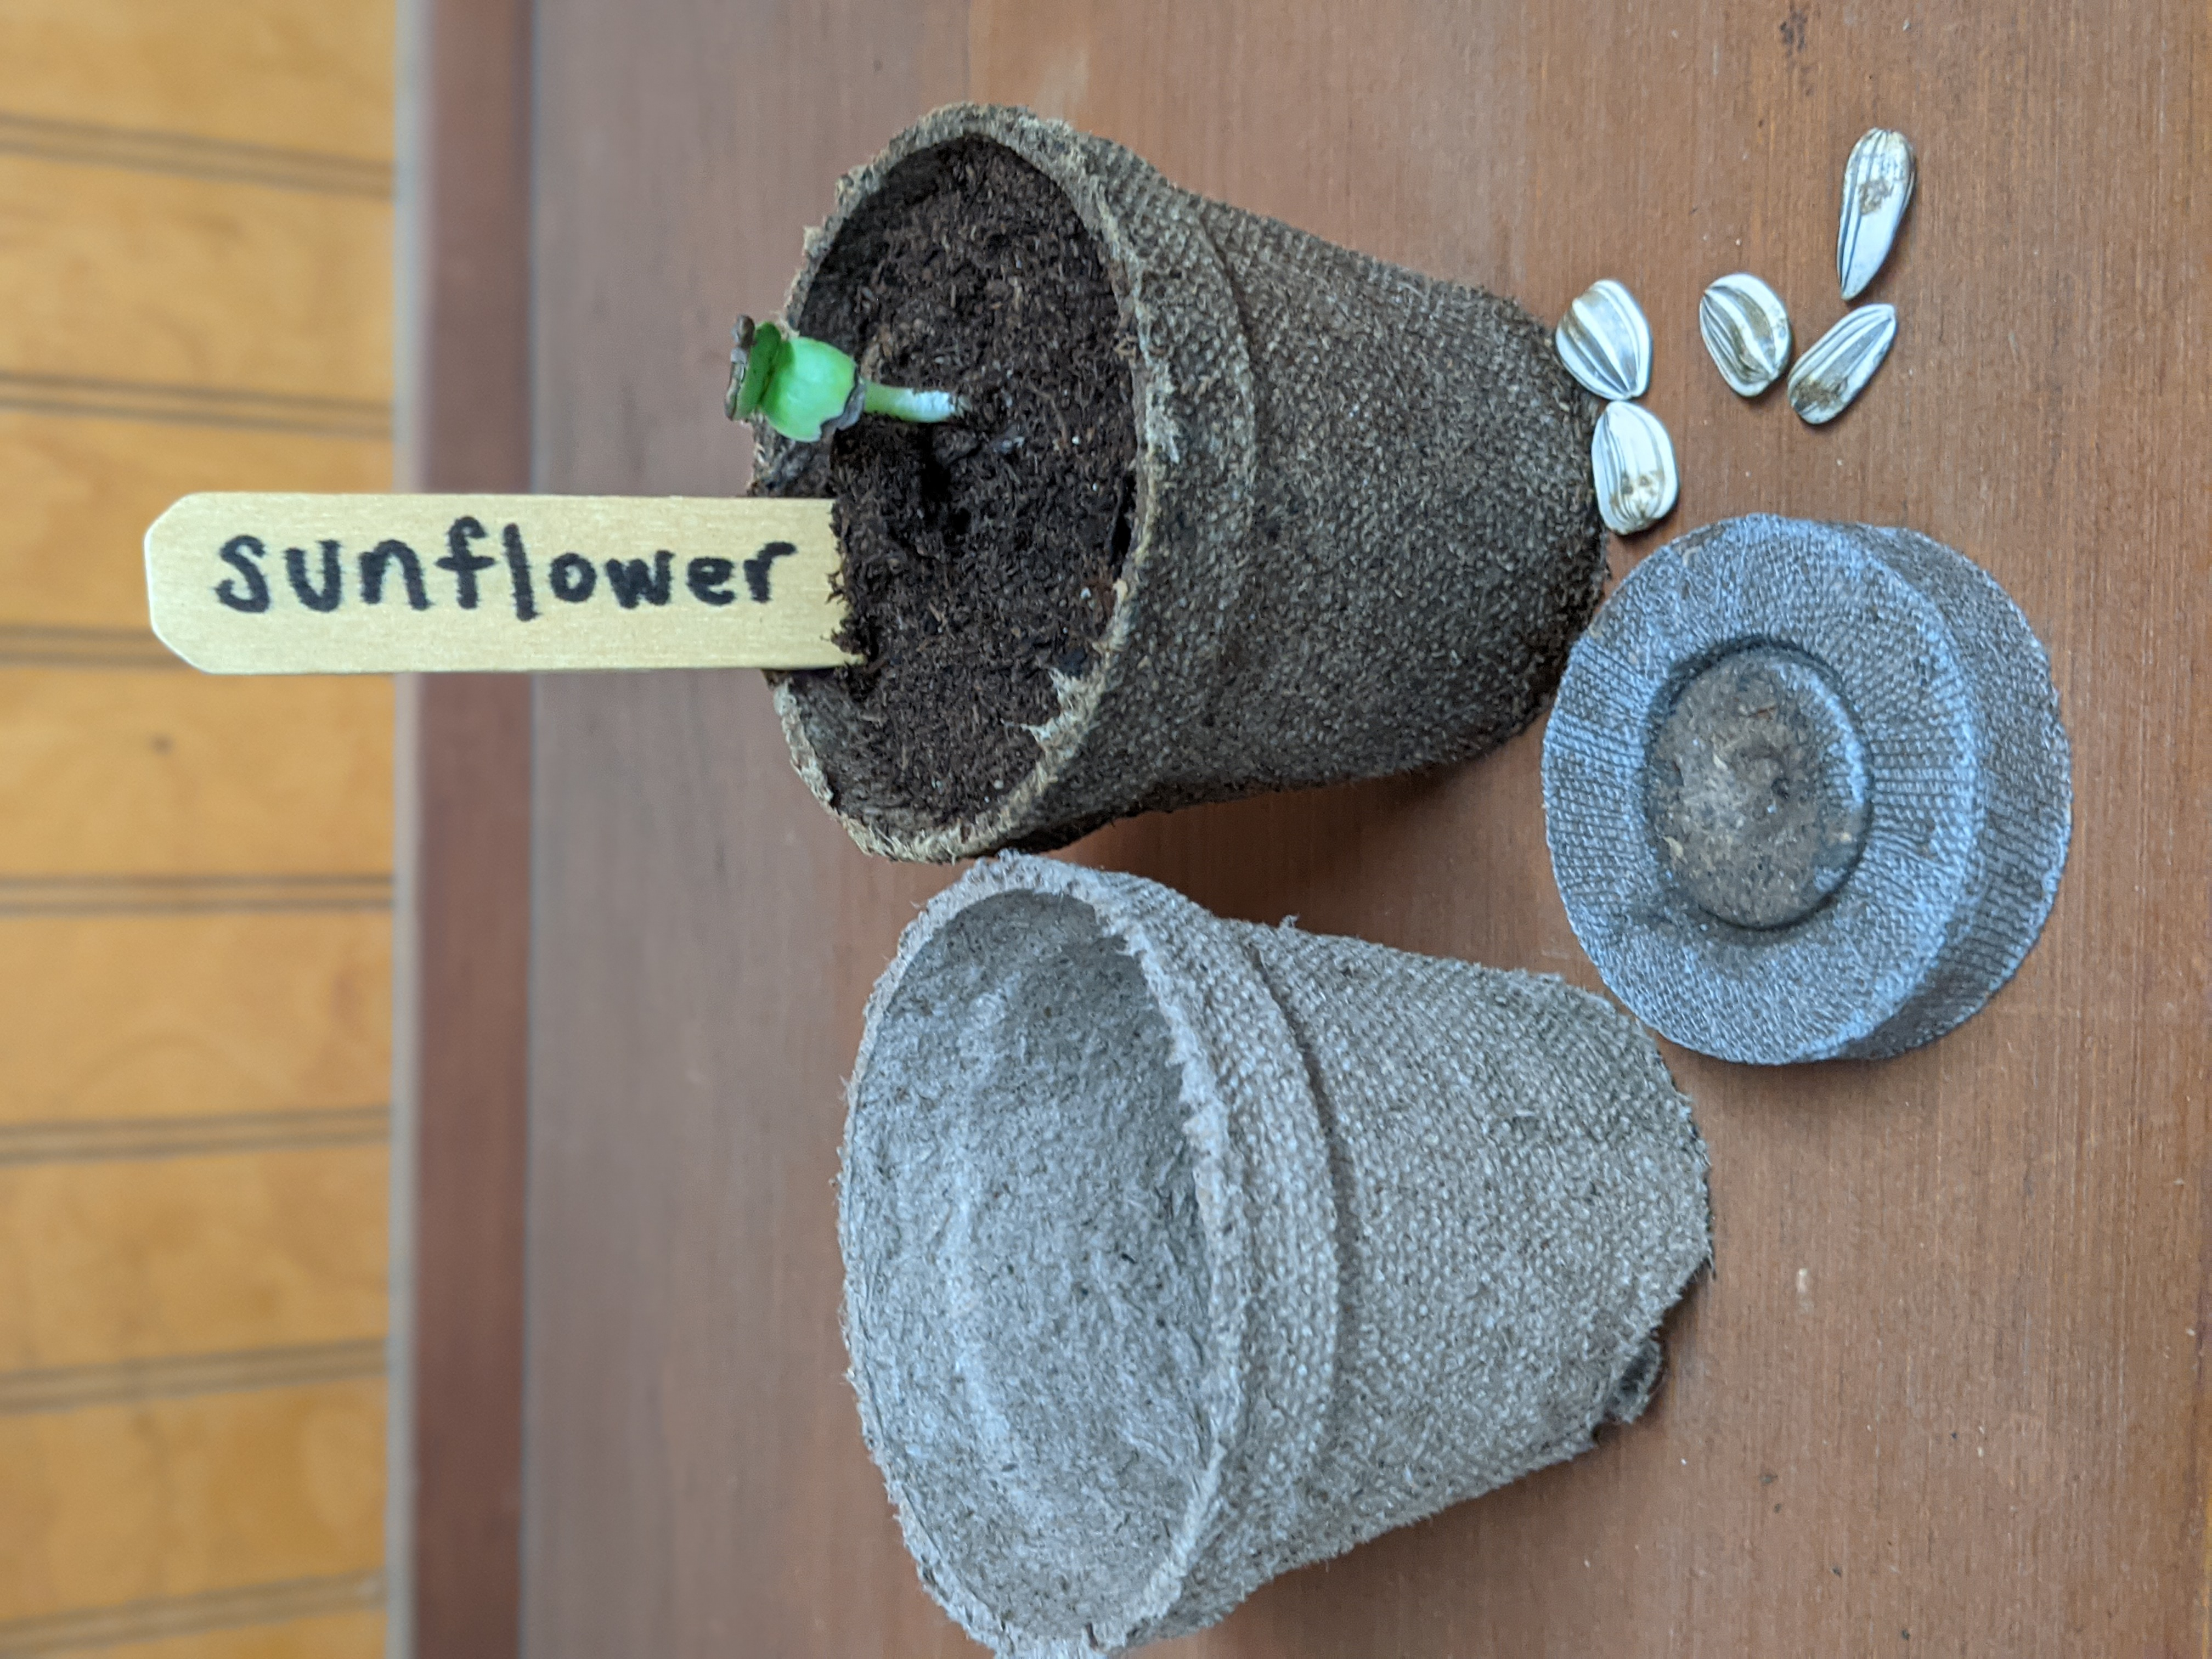 Growing a Sunflower in a peat pot